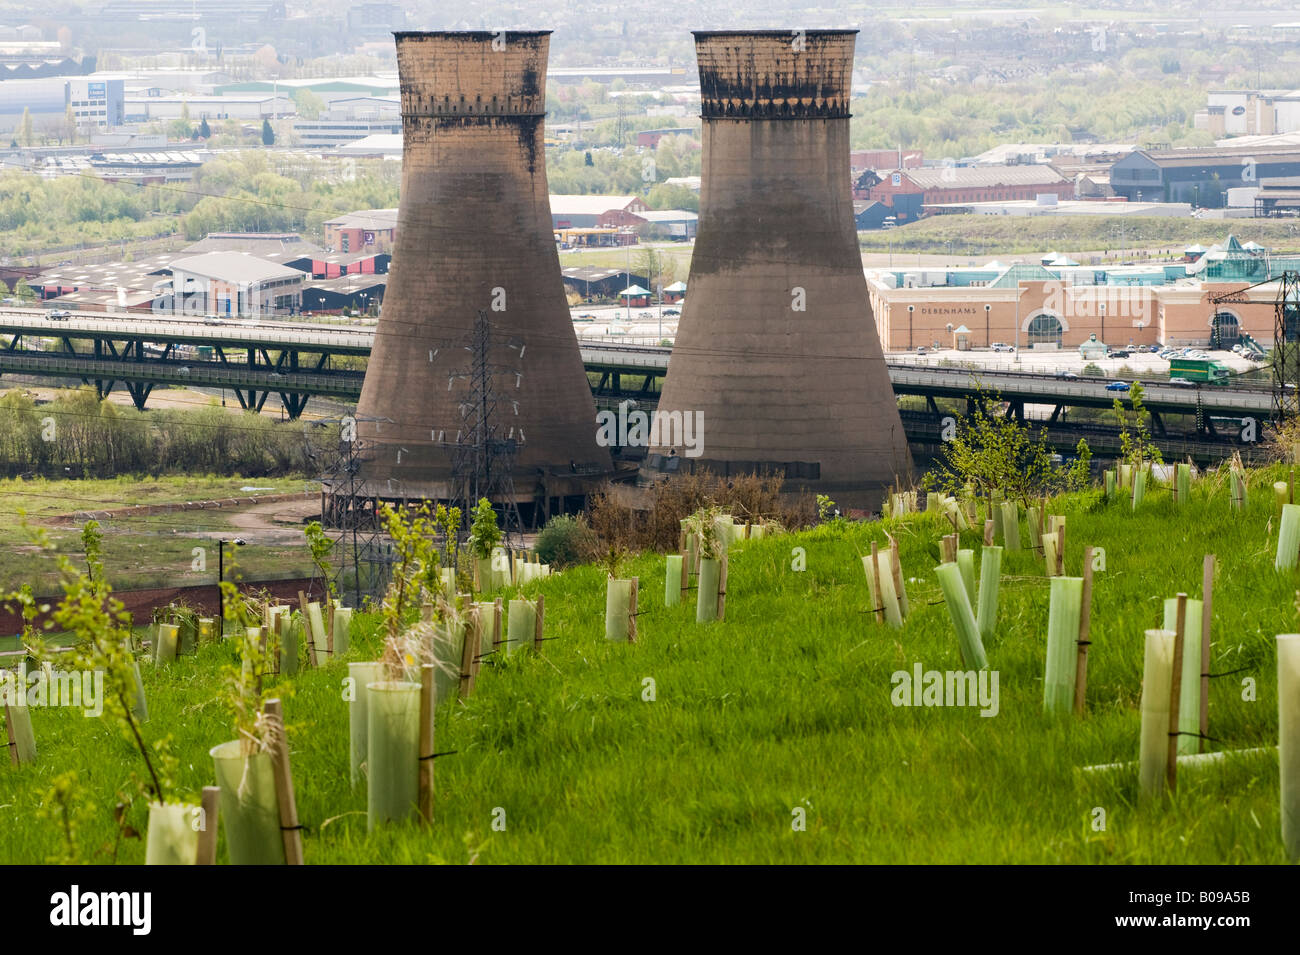 Tinsley cooling towers the m1 motorway and Meadowhall shopping center  in Sheffield 'Great Britain' - Stock Image